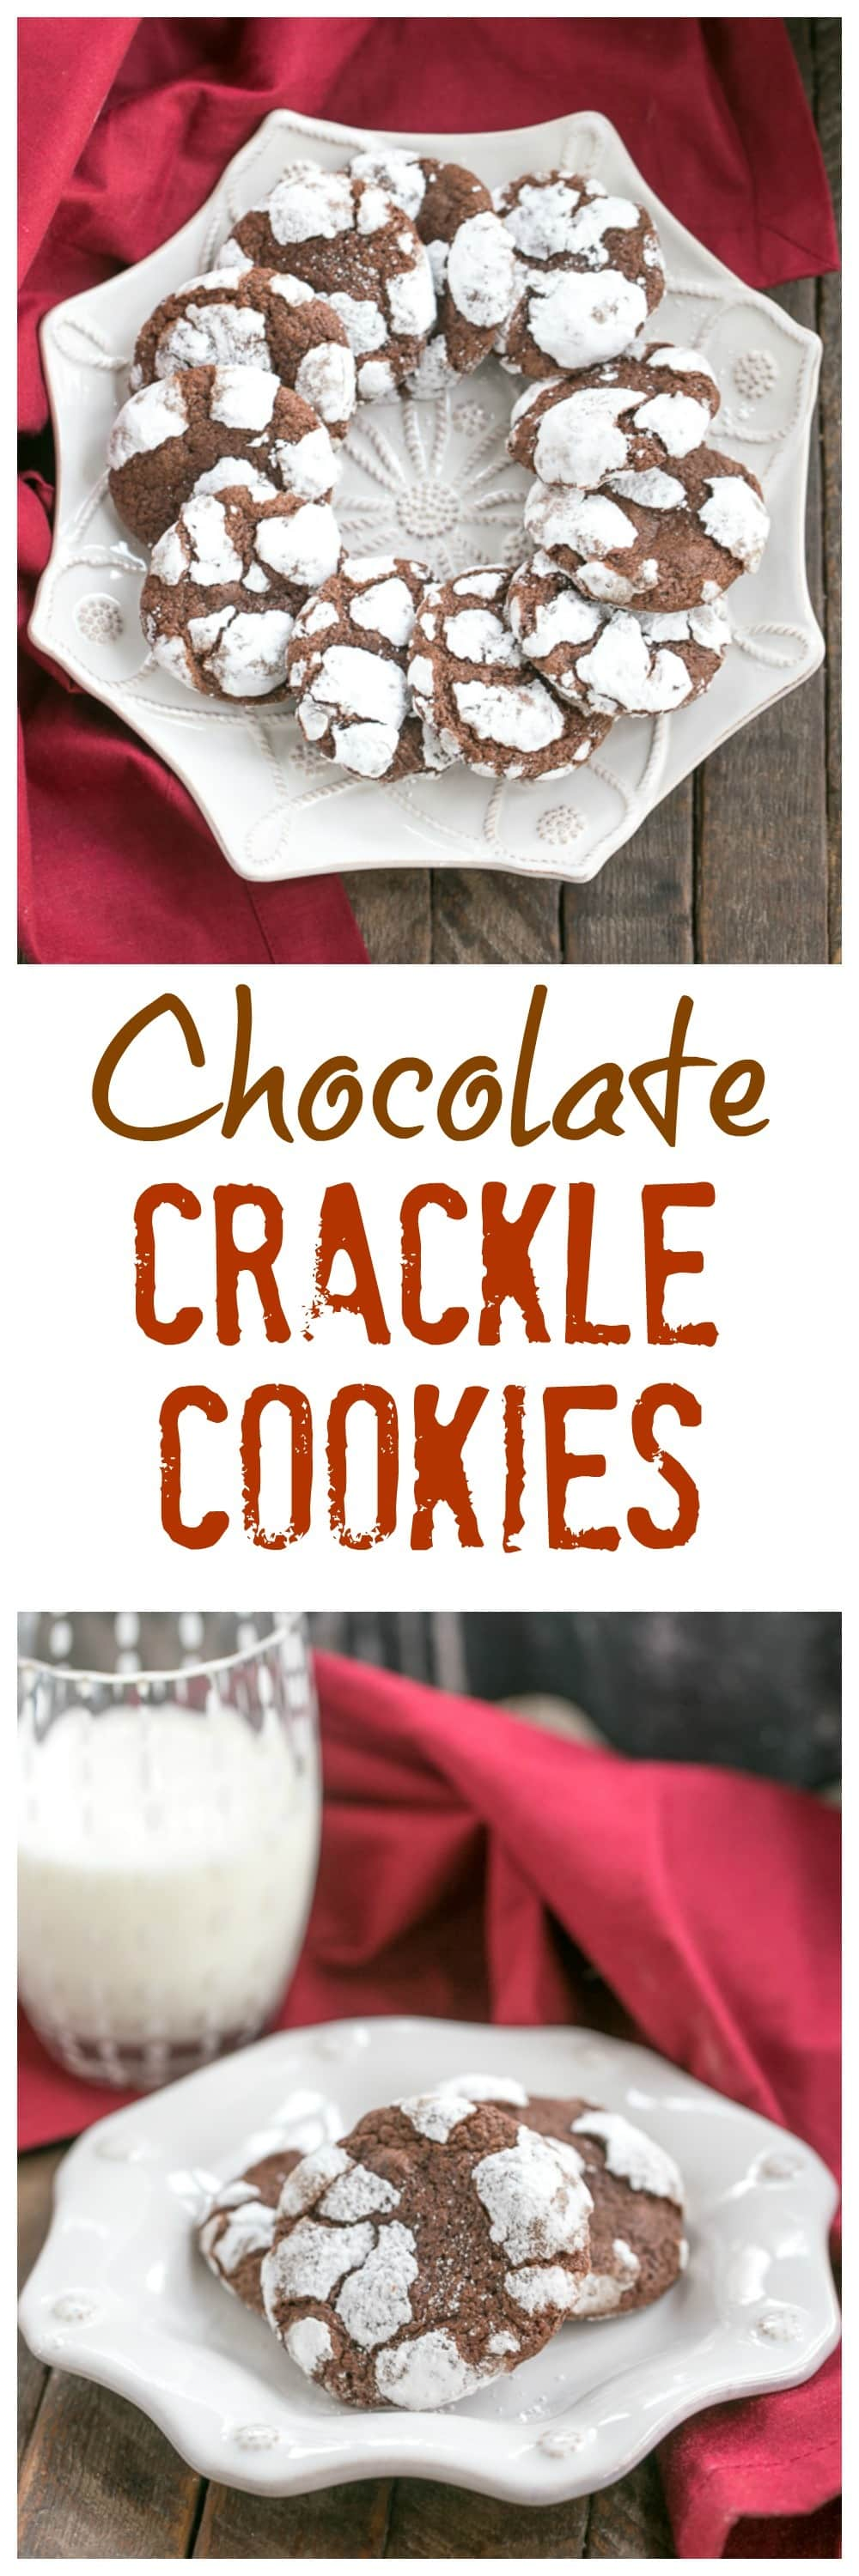 Chocolate Crackle Cookies #Giveaway - That Skinny Chick Can Bake